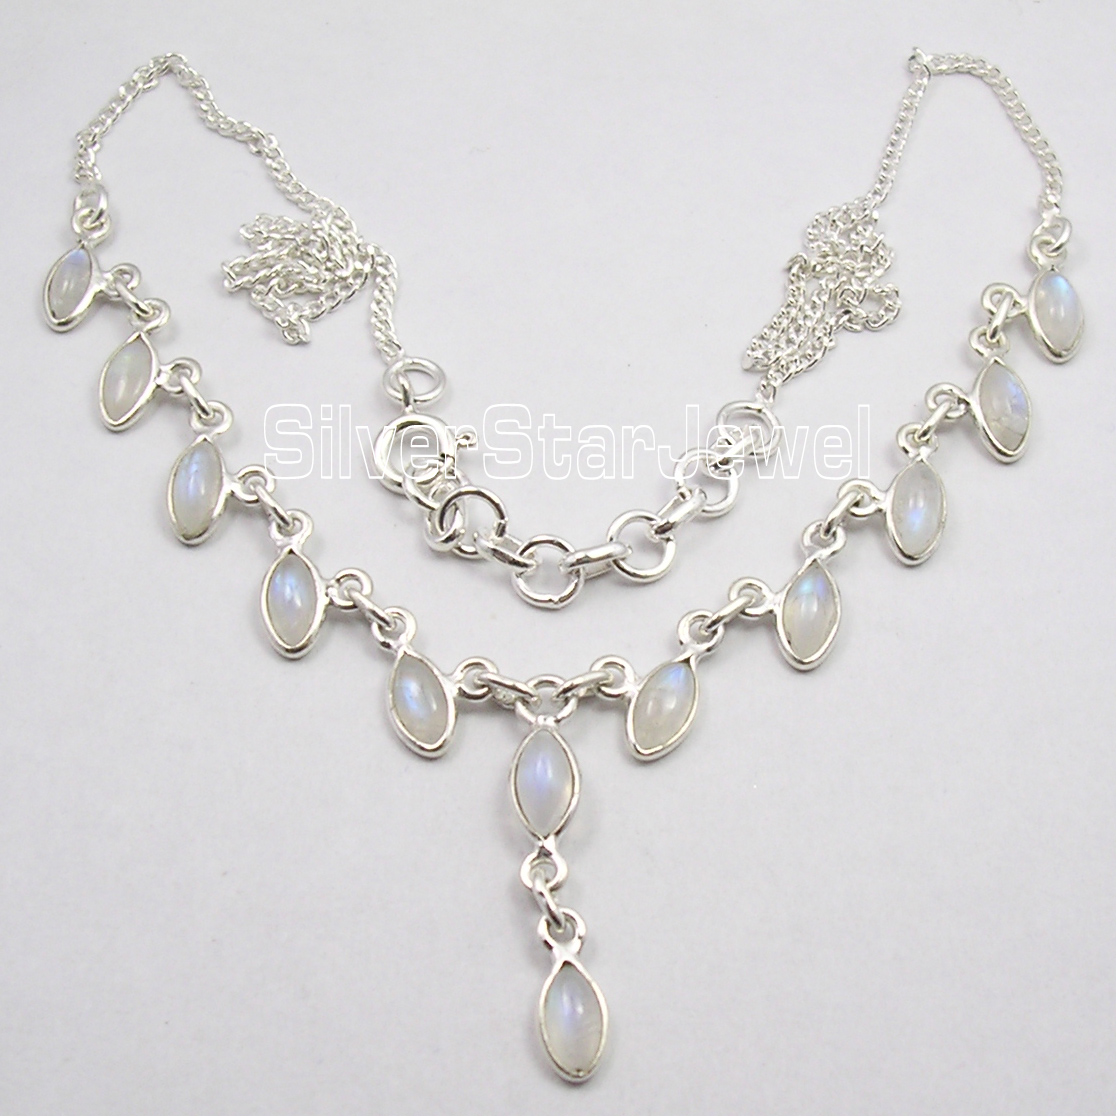 Silver MARQUISE RAINBOW MOONSTONE Curb Chain Necklace 17 7 8 Inches